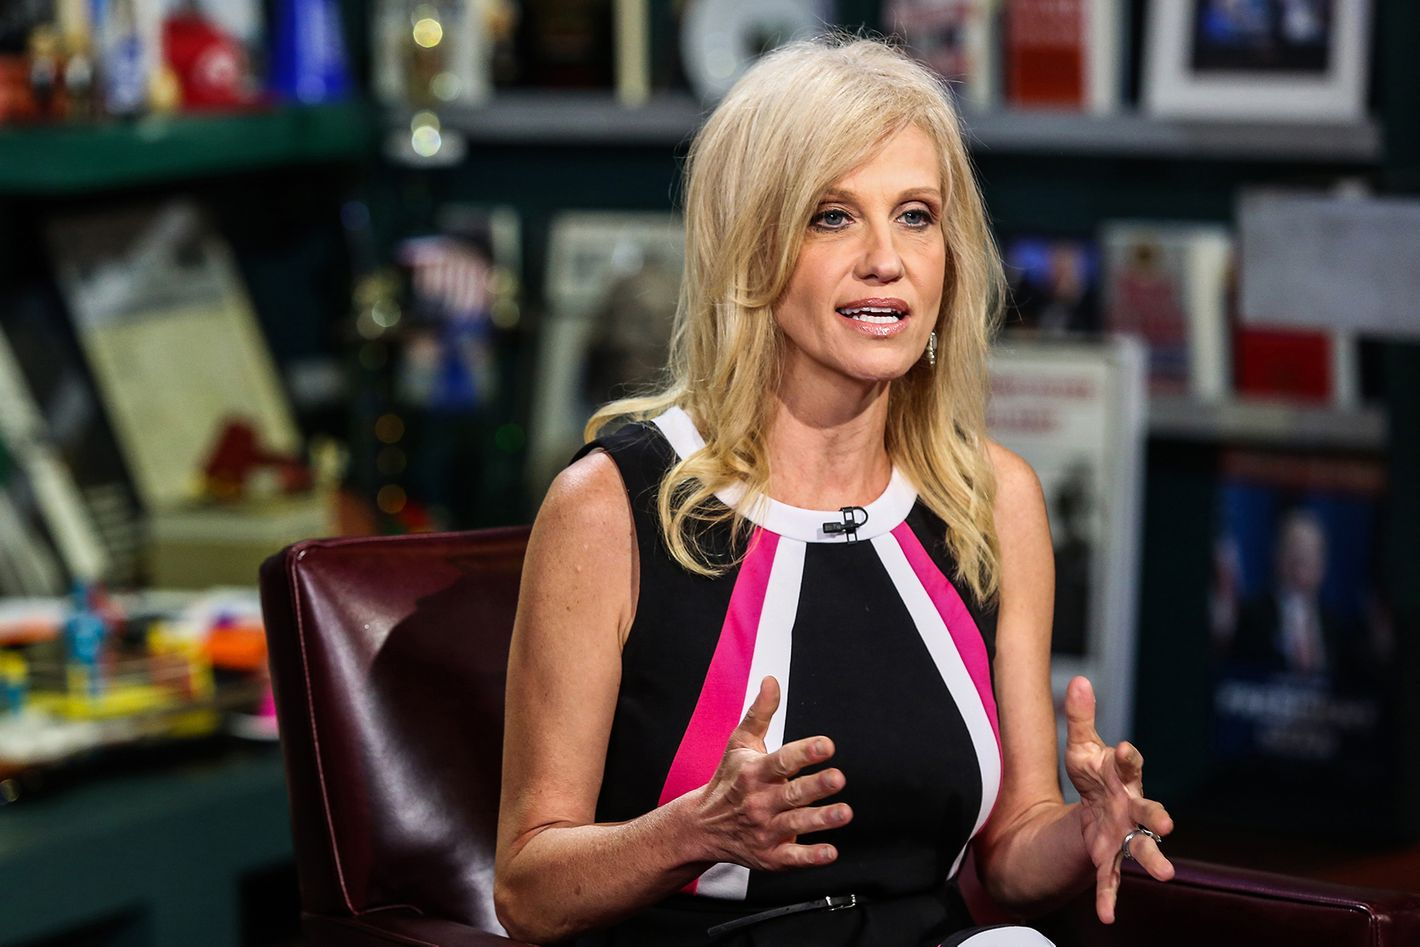 Polling Co. Inc./Woman Trend President And Chief Executive Officer Kellyanne Conway Interview